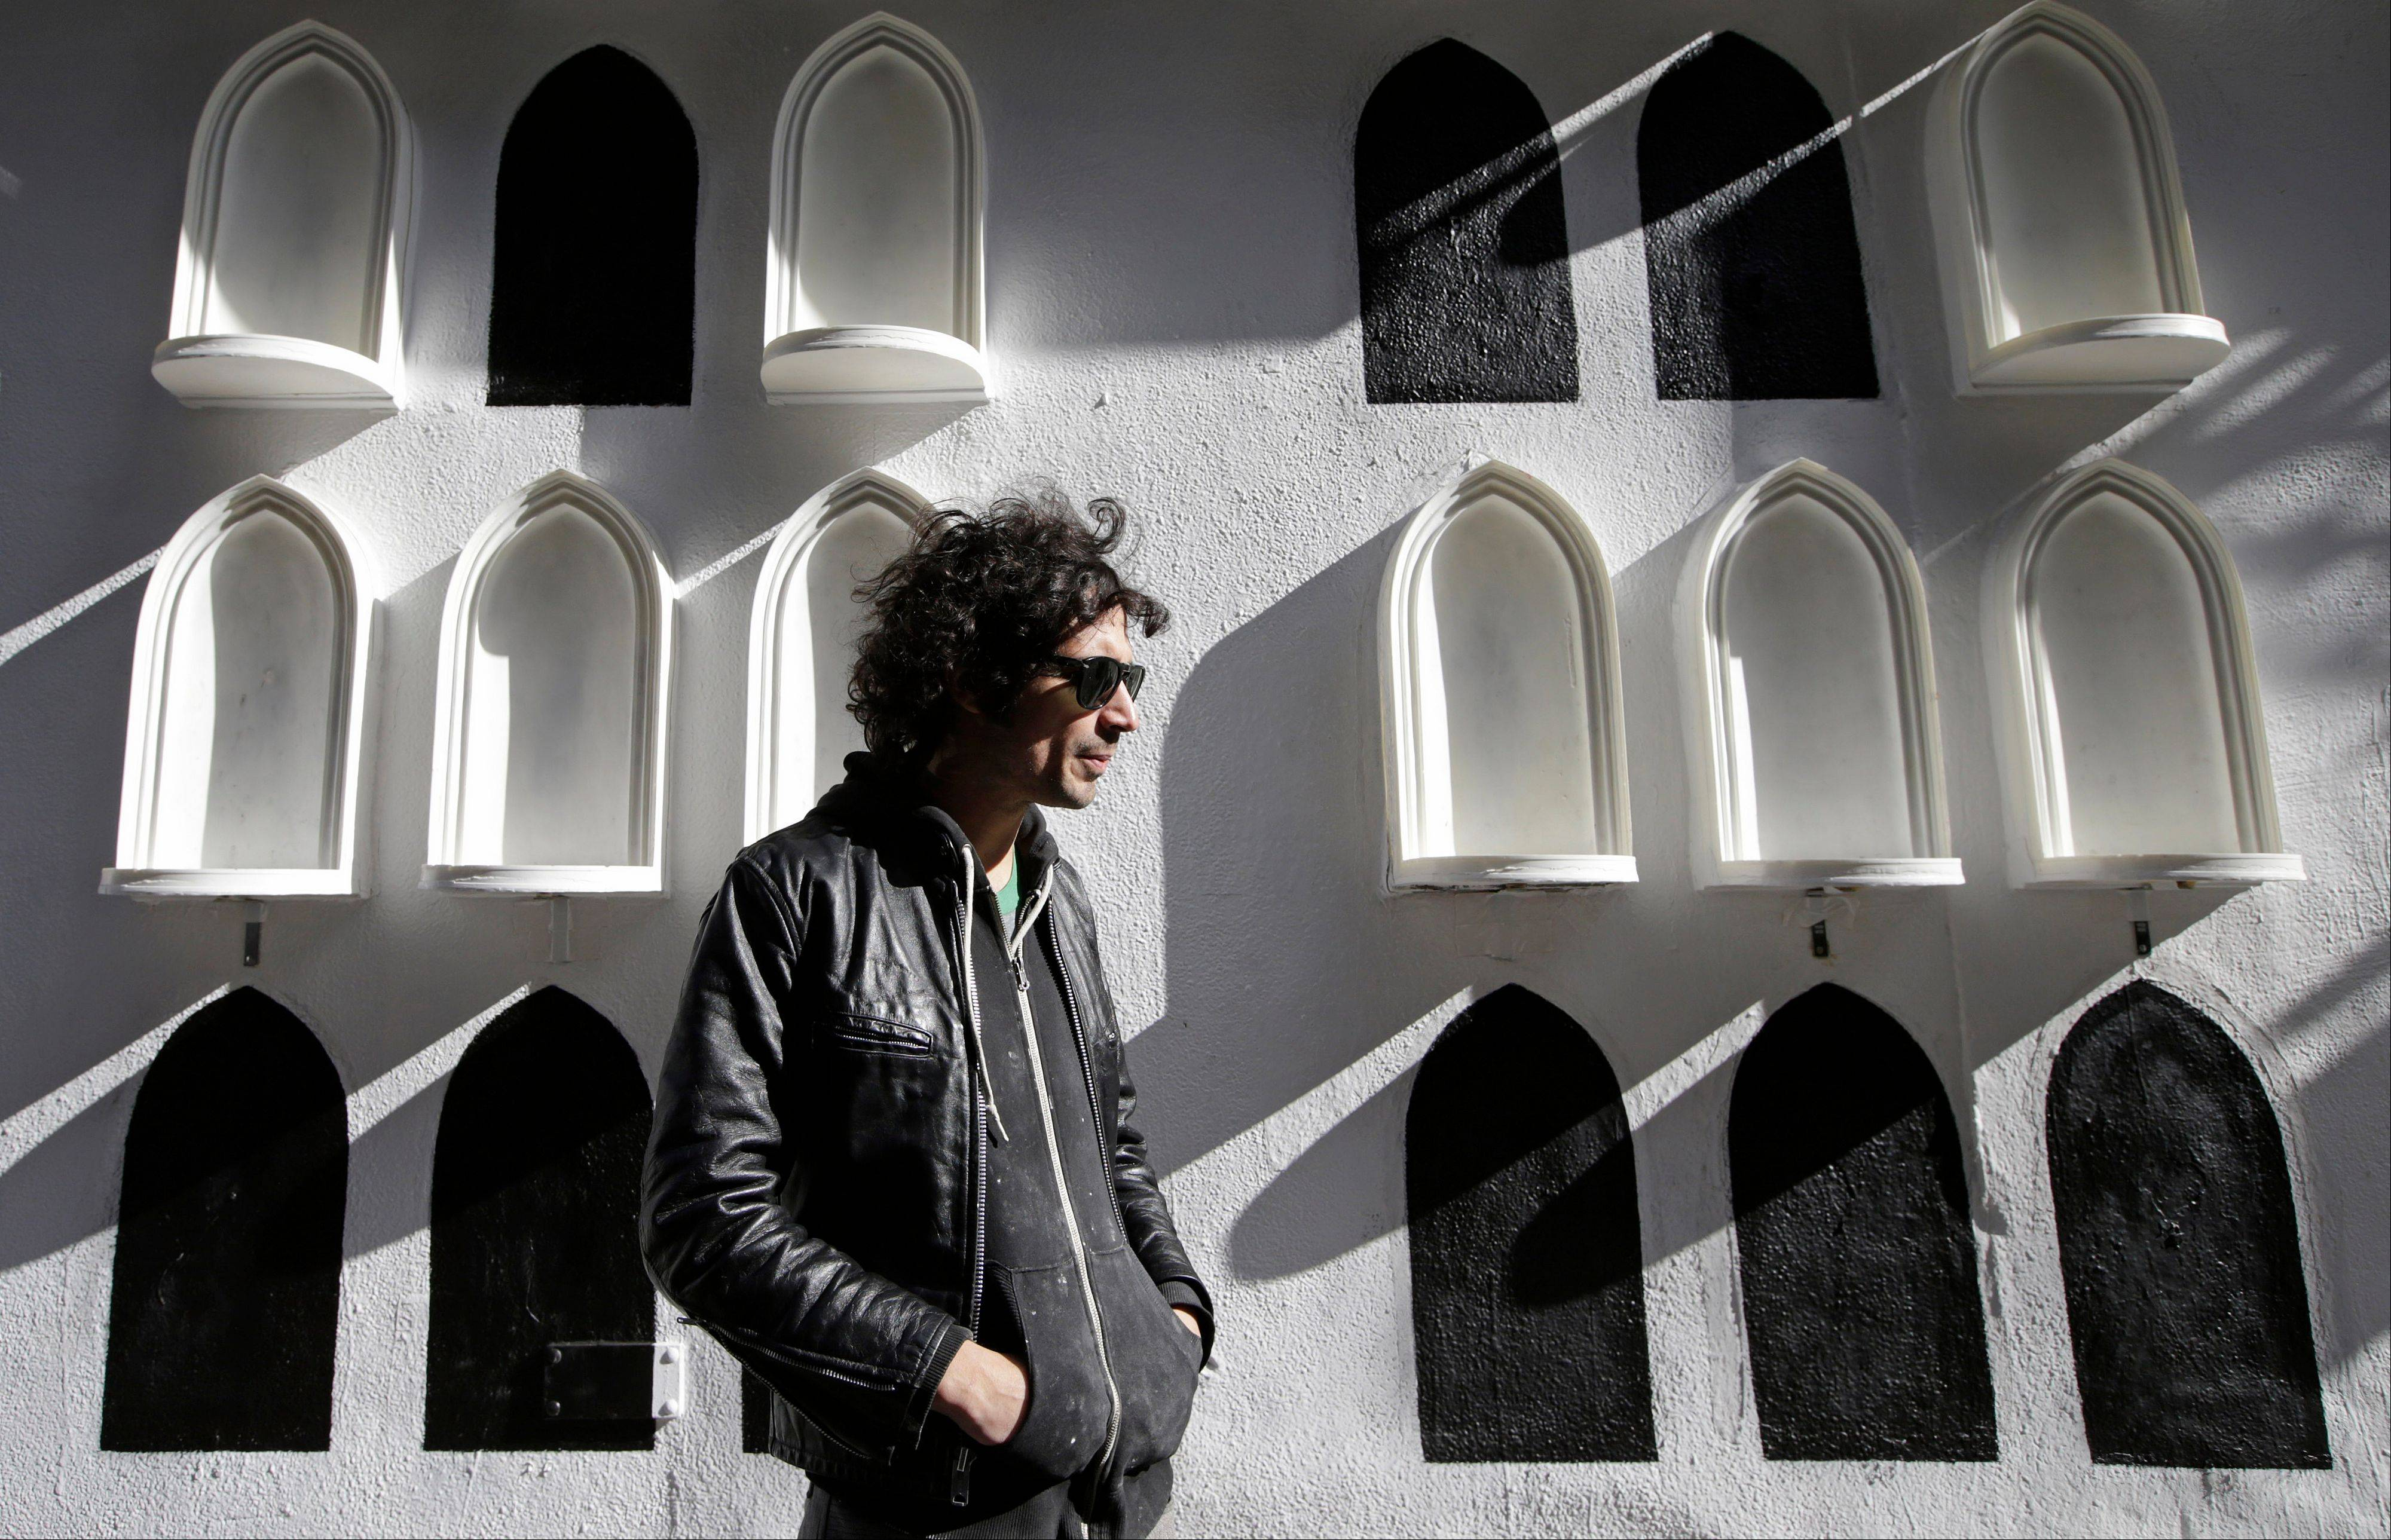 The Strokes' drummer Fabrizio Moretti in front of his installation on the exterior wall of the SoHo Rag & Bone store in New York. The installation is part of the clothing brand's ongoing urban art project, in which they get artists to revamp the store's facade.